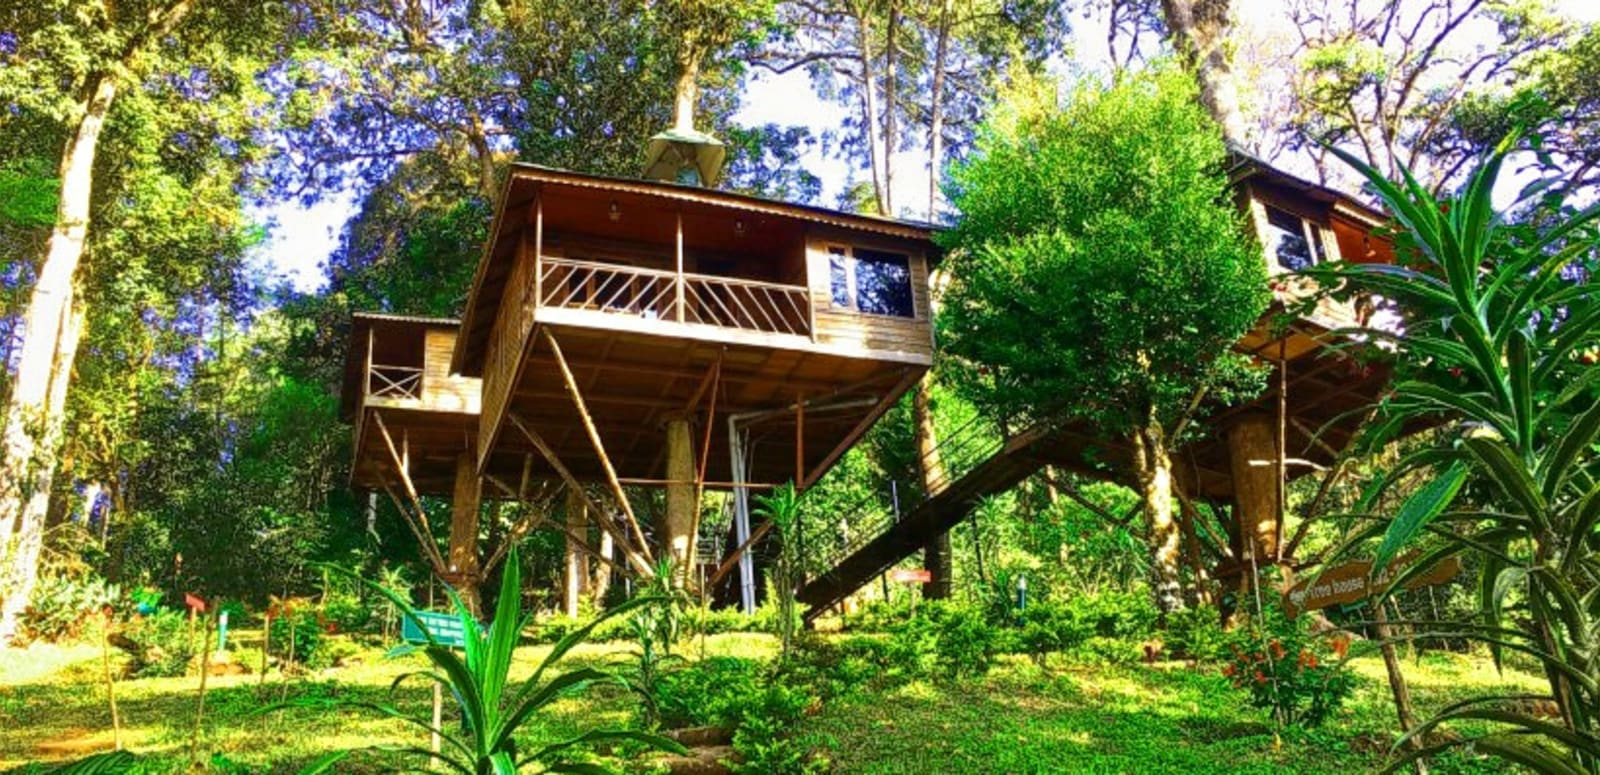 20 Best Tree Houses In Kerala 2019 With Photos Reviews